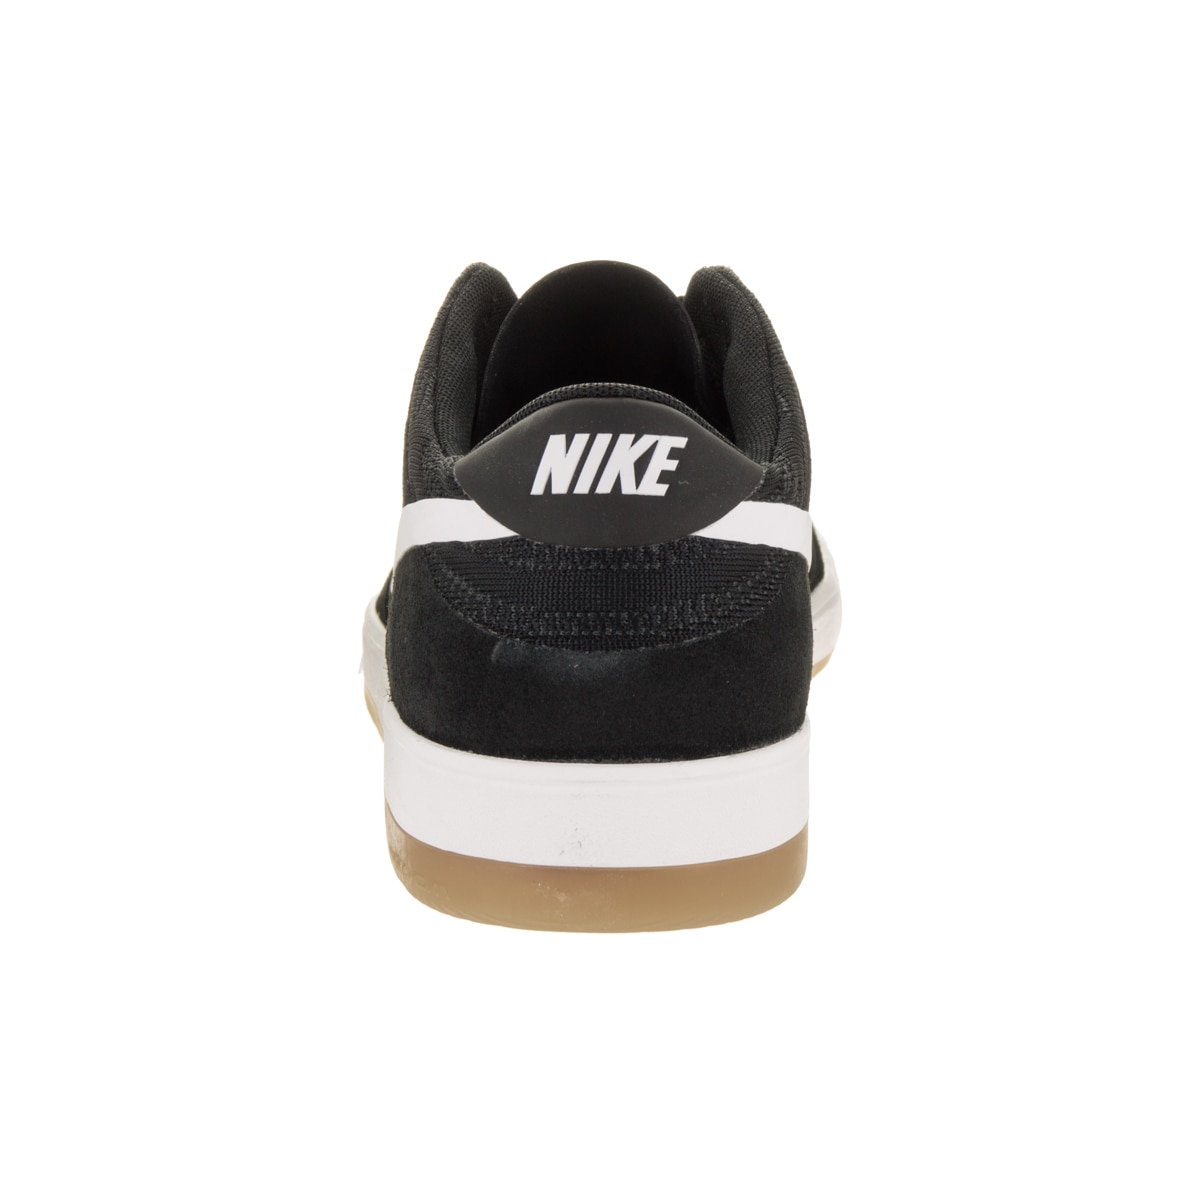 bbf745944ee9 Shop Nike Men s SB Zoom Dunk Low Elite Skate Shoes - Free Shipping Today -  Overstock.com - 15924614